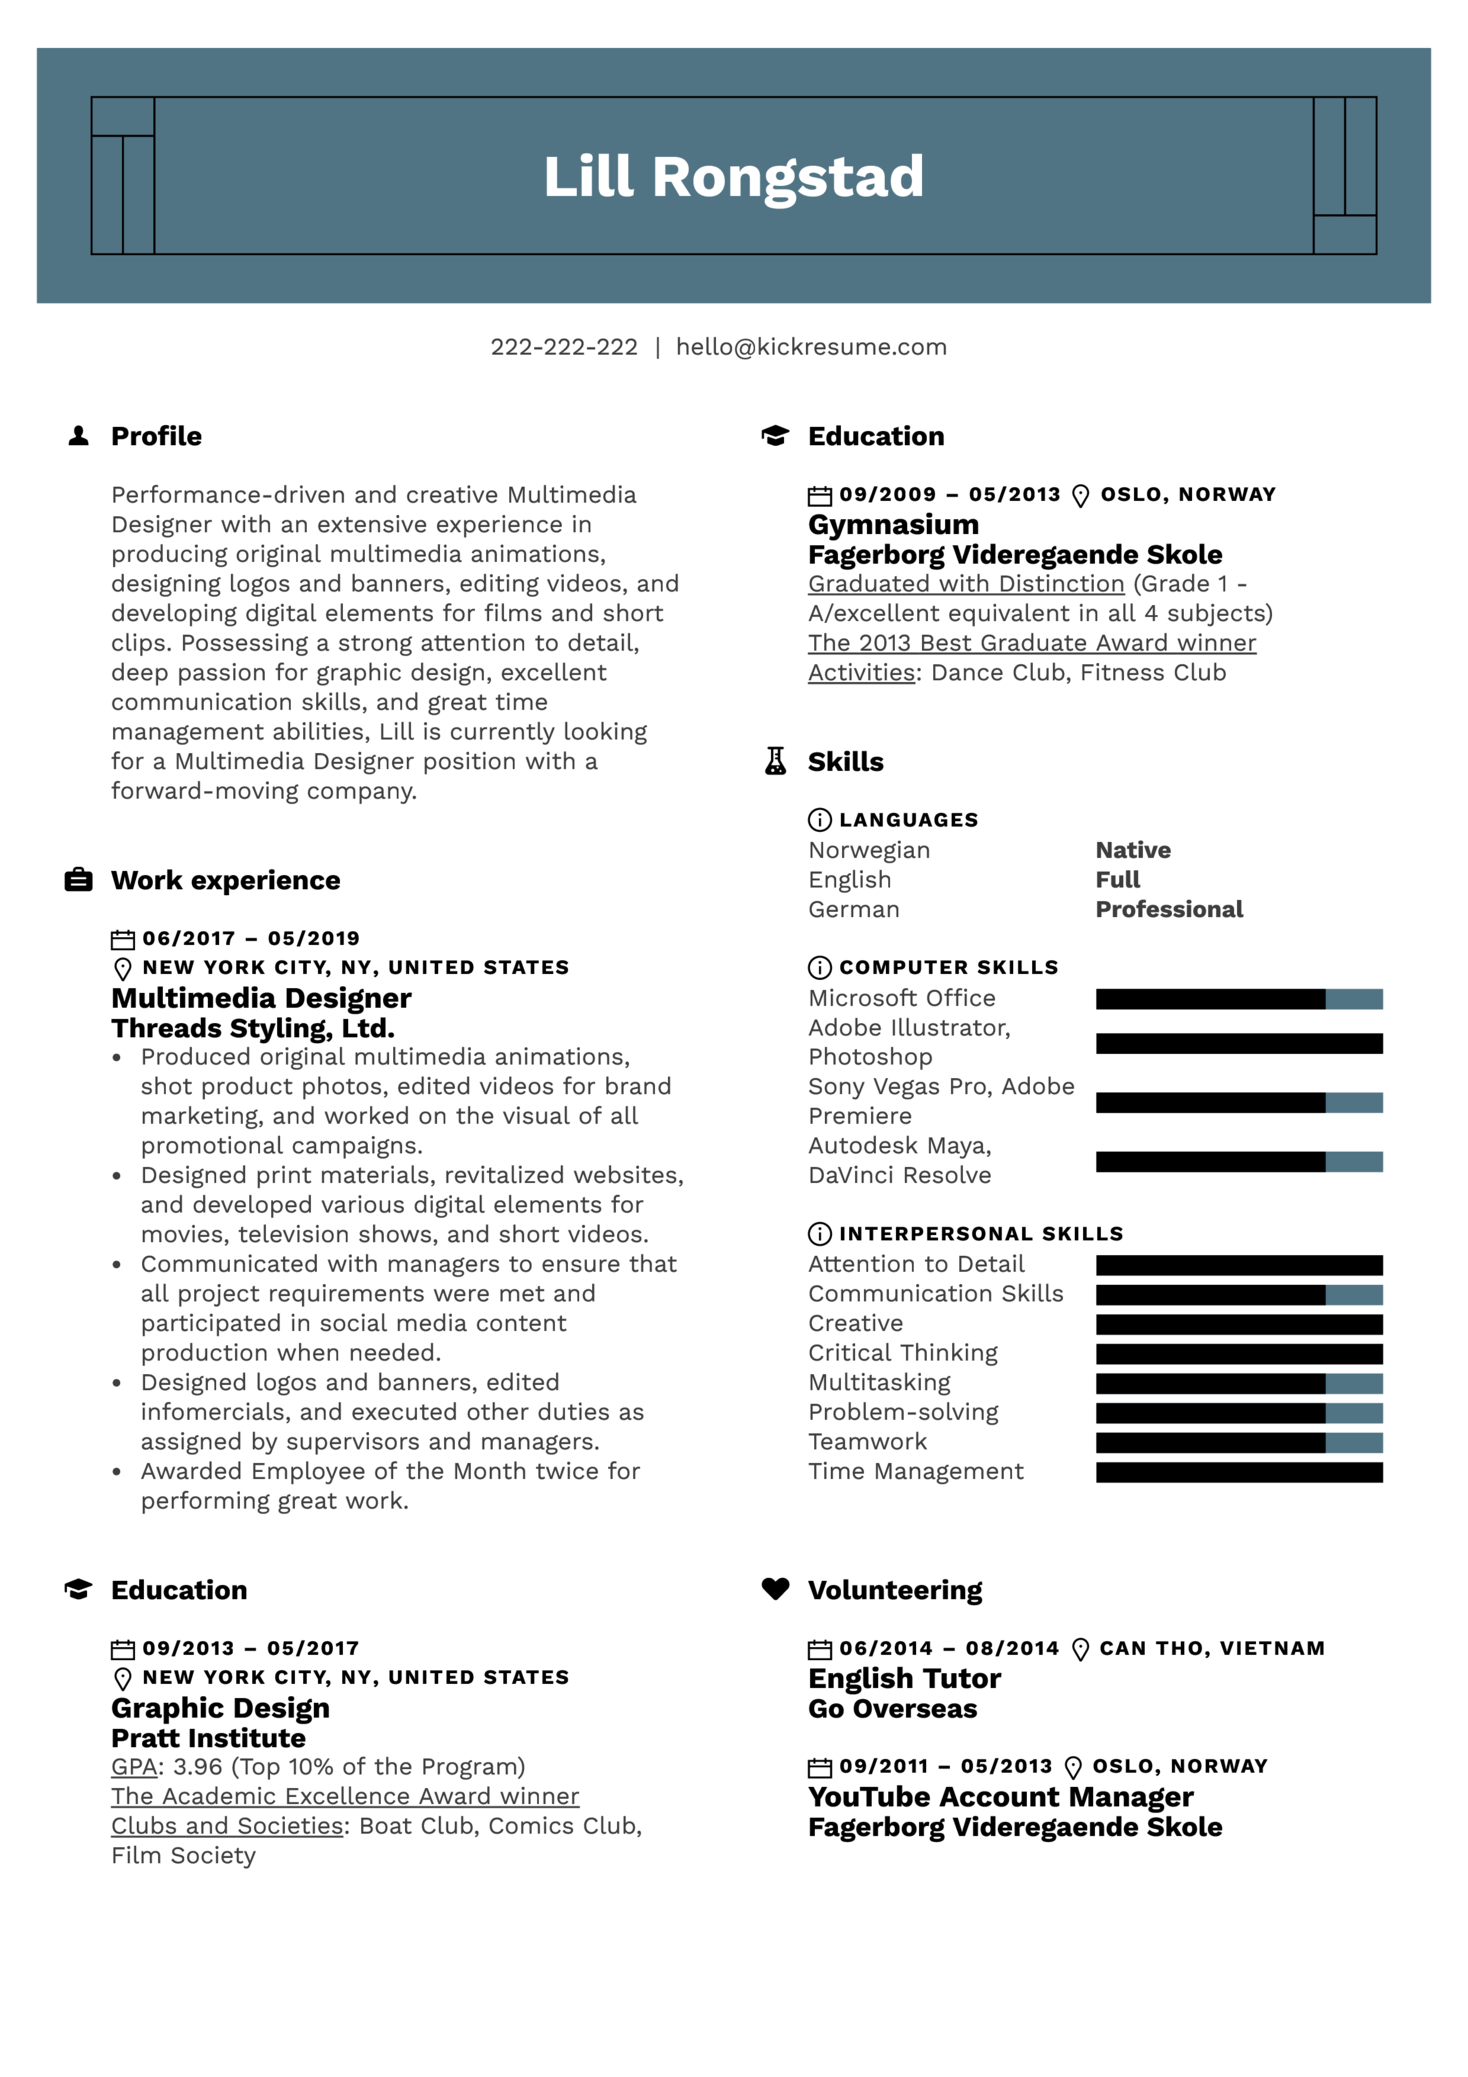 Multimedia Designer Resume Example (Teil 1)